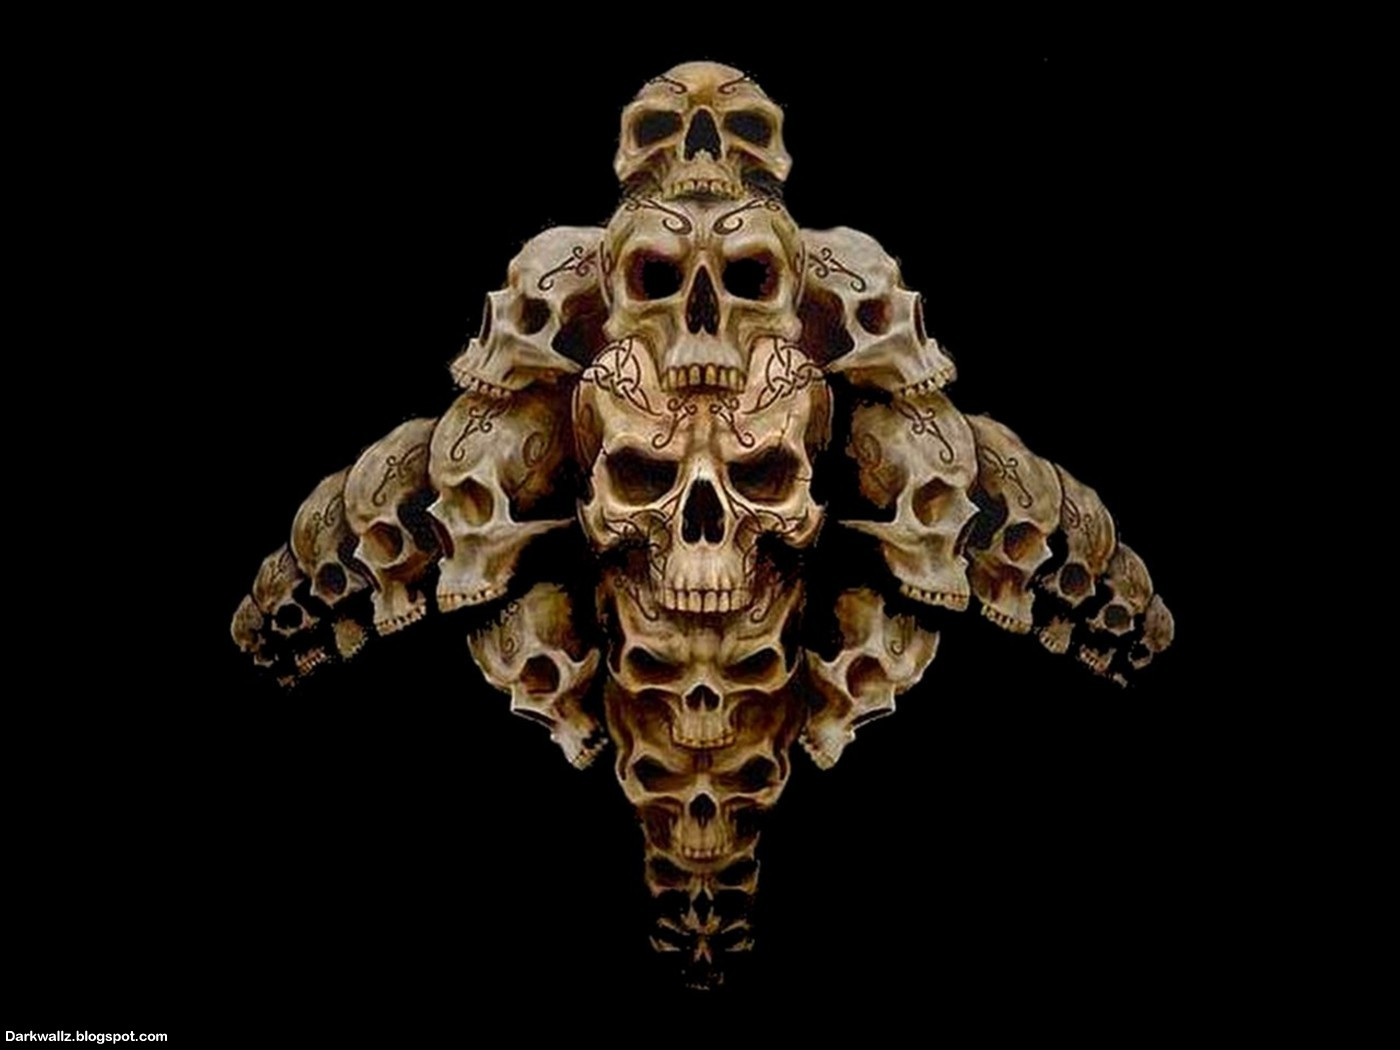 Skulls Wallpapers 64 | Dark Wallpaper Download